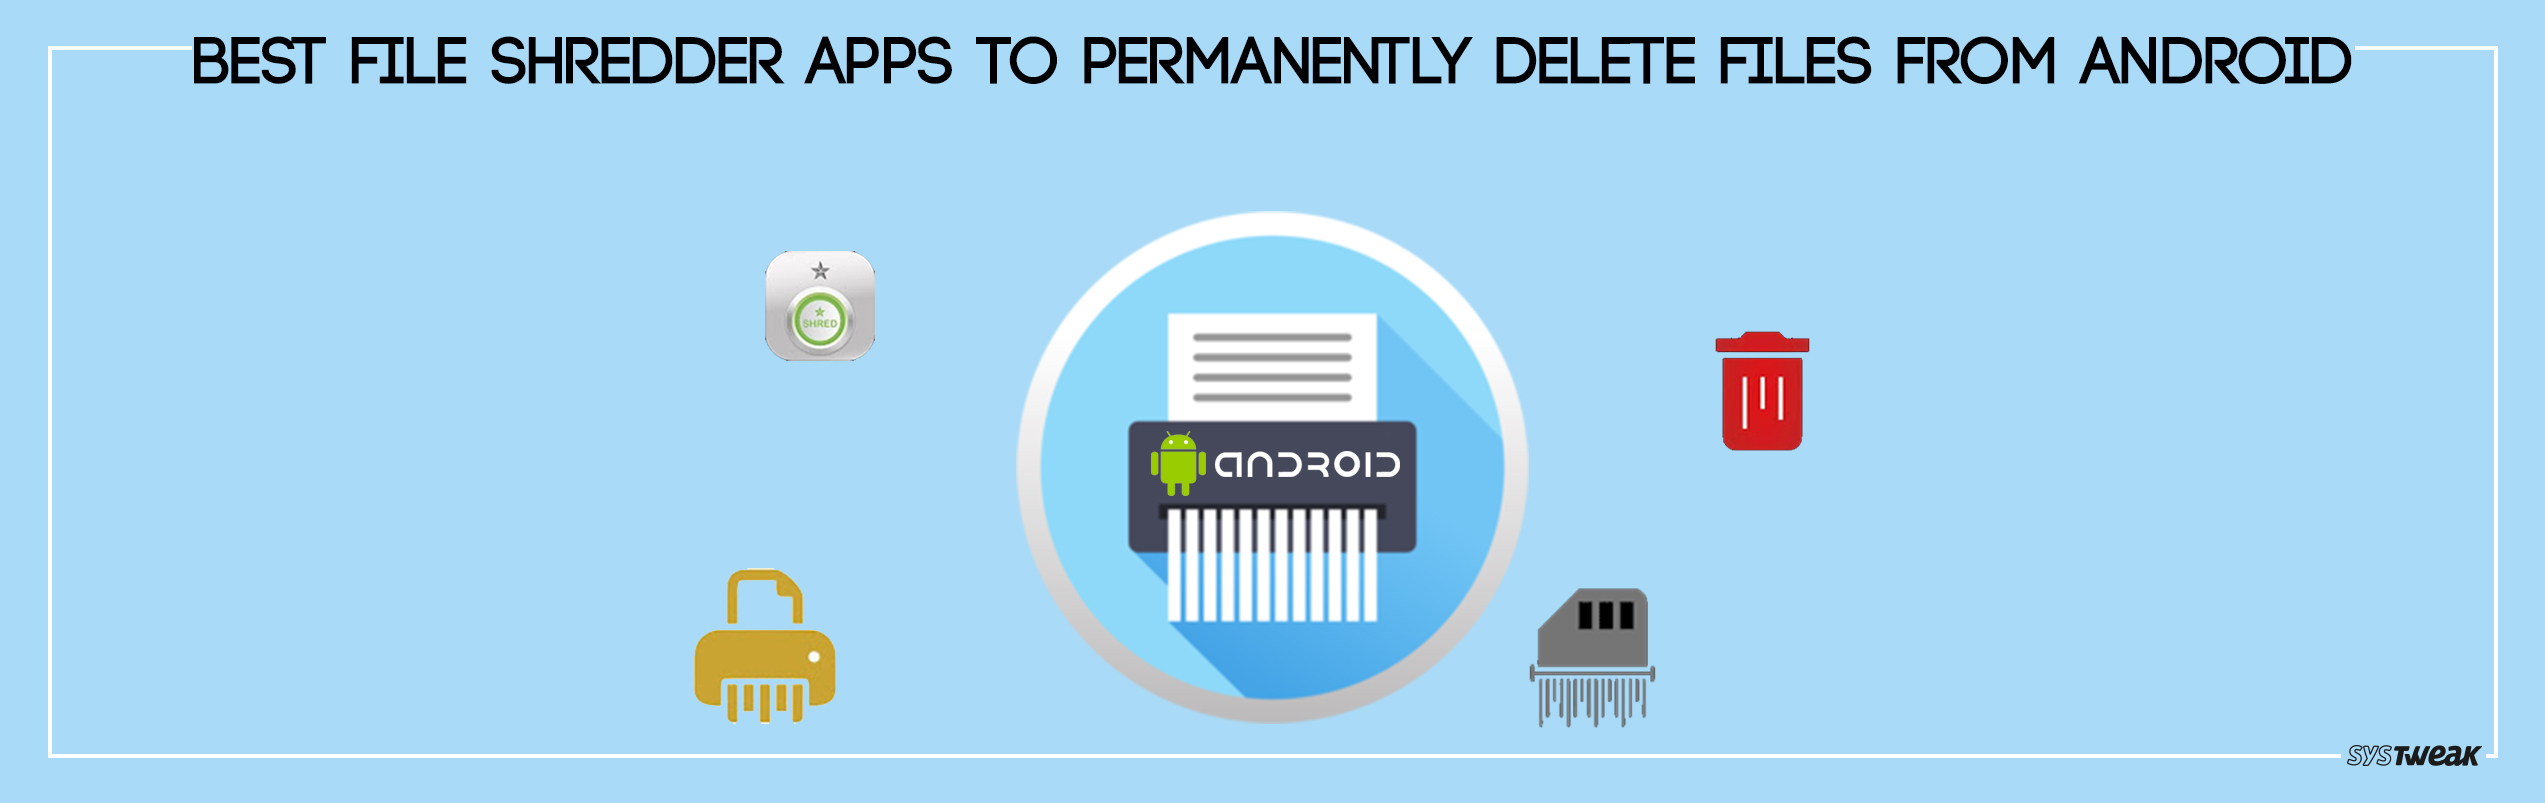 5 Best File/Data Shredder Apps To Permanently Delete Data From Android